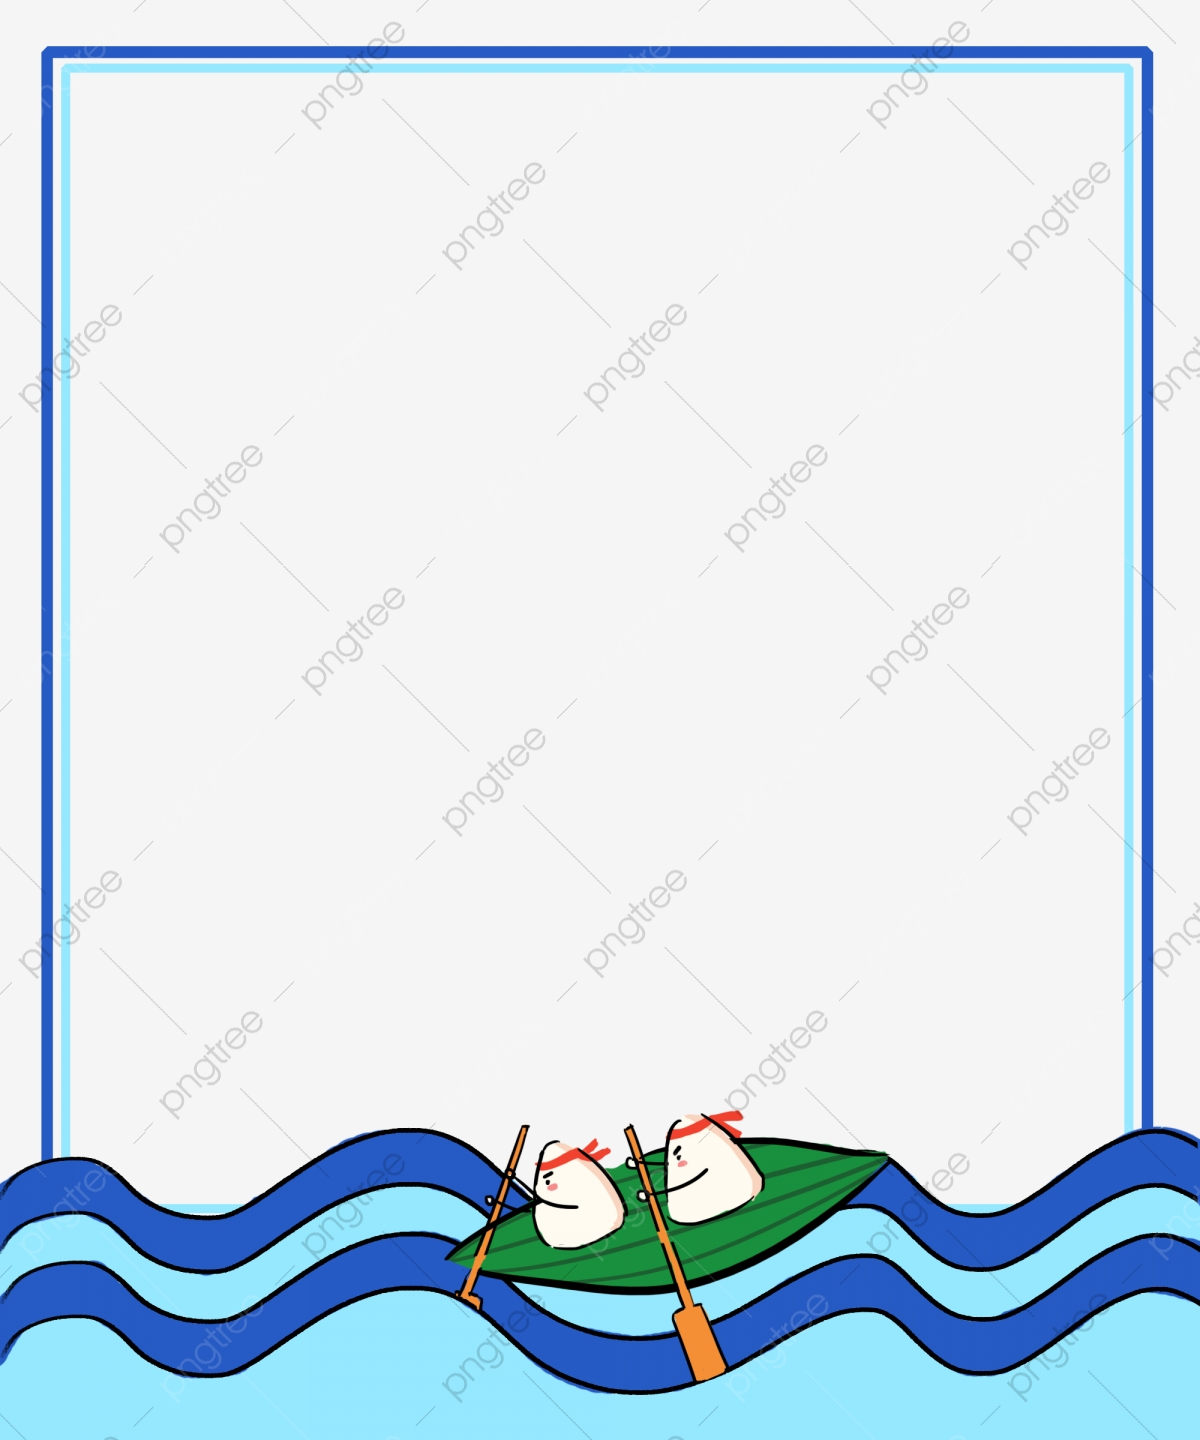 Dragon Boat Festival Swimming Cartoon Scorpion Border Free Buckle Png Dragon Boat Festival Scorpion Dragon Boat Cartoon Png Transparent Clipart Image And Psd File For Free Download